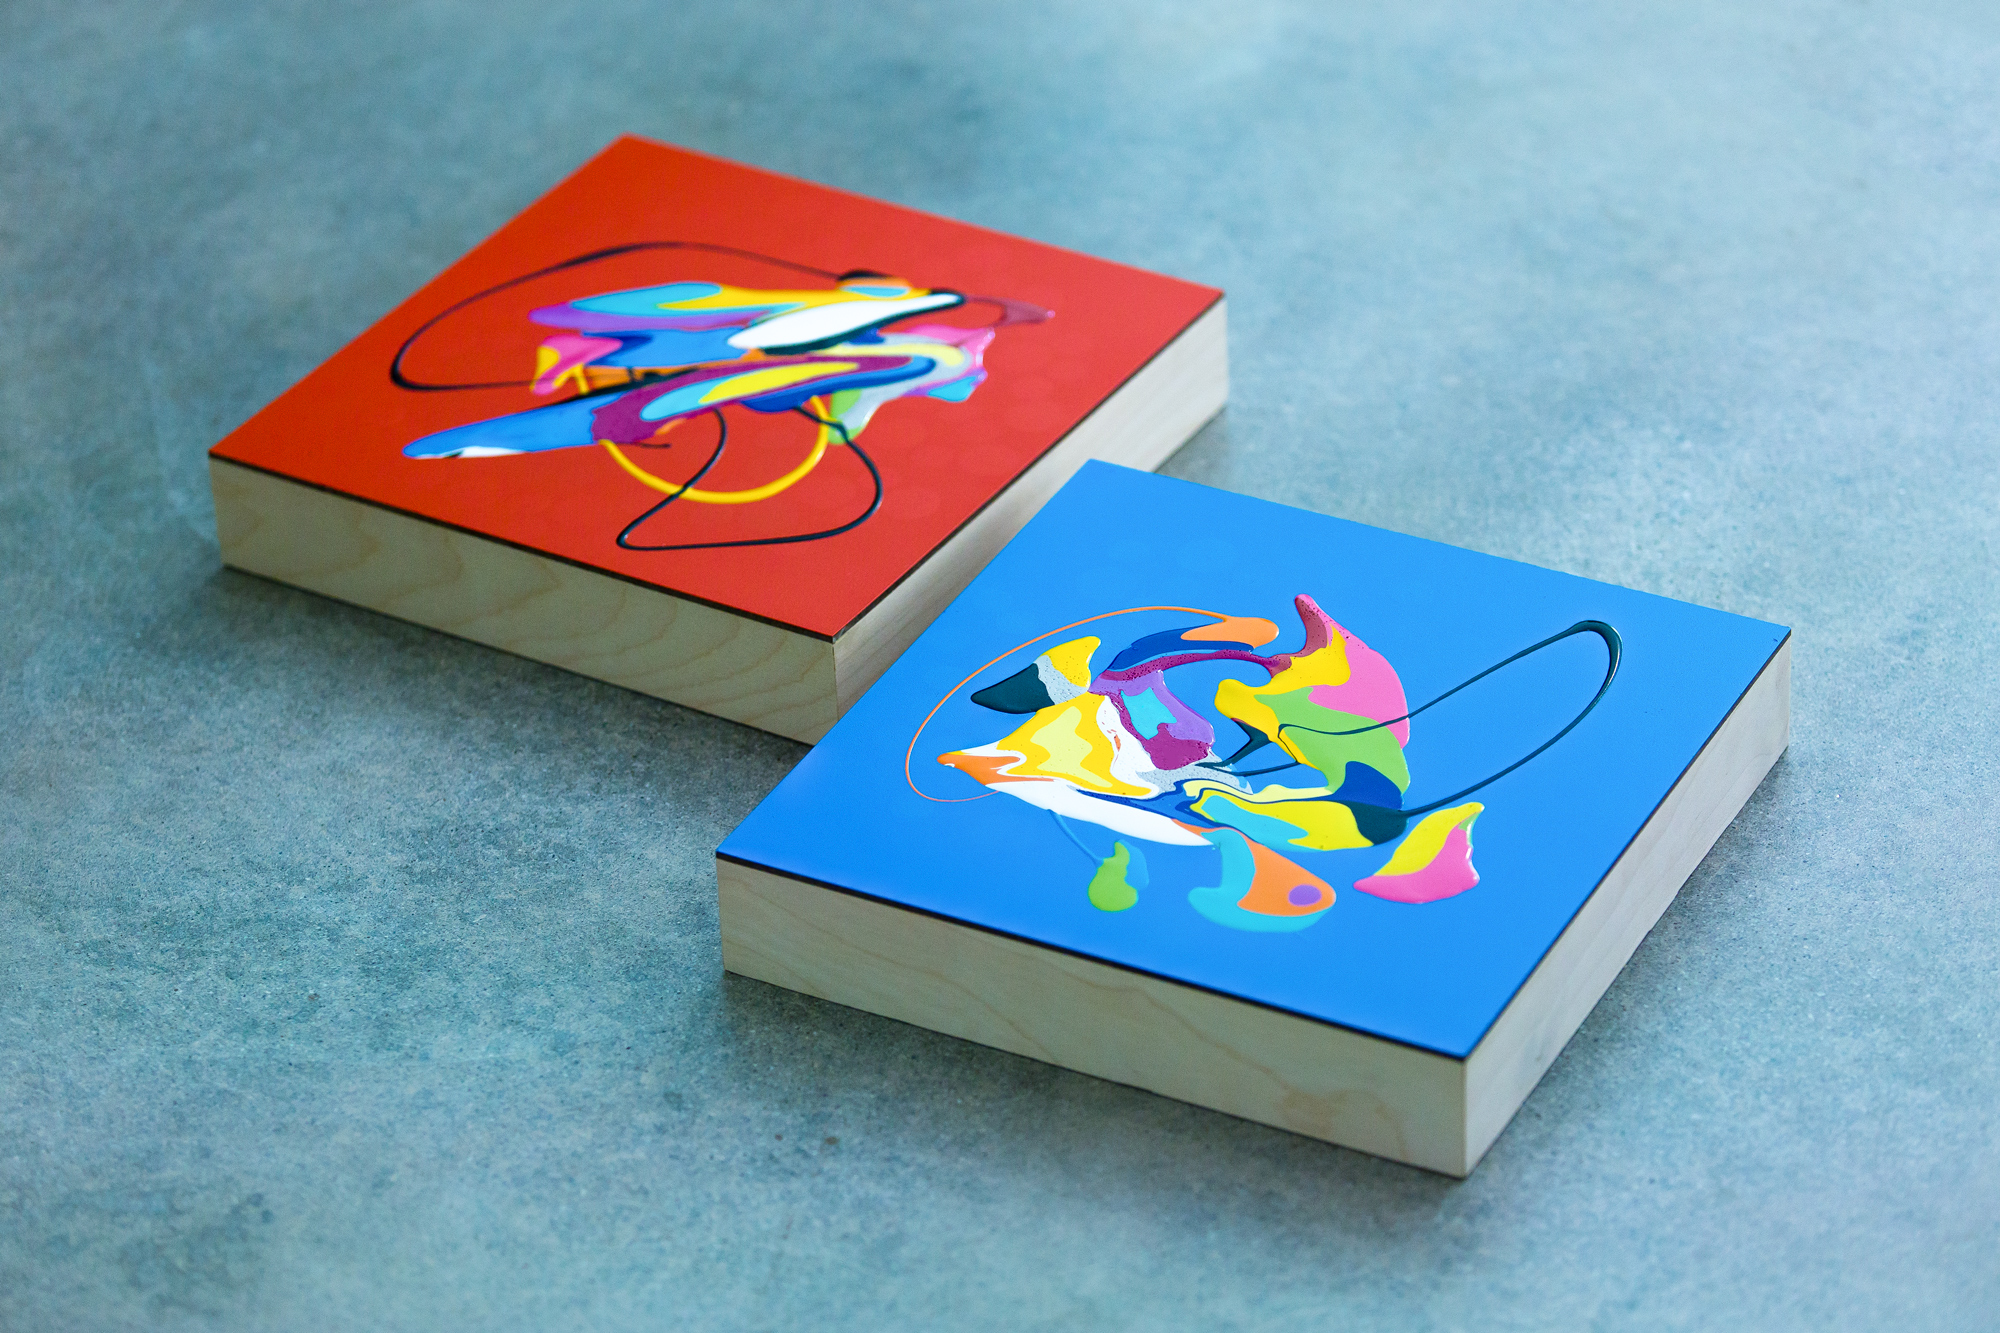 Untitled (splat series #22 and #23), 2015 Oil base enamel and spray paint on wood 10 x 10 x 2.5 inches (each)